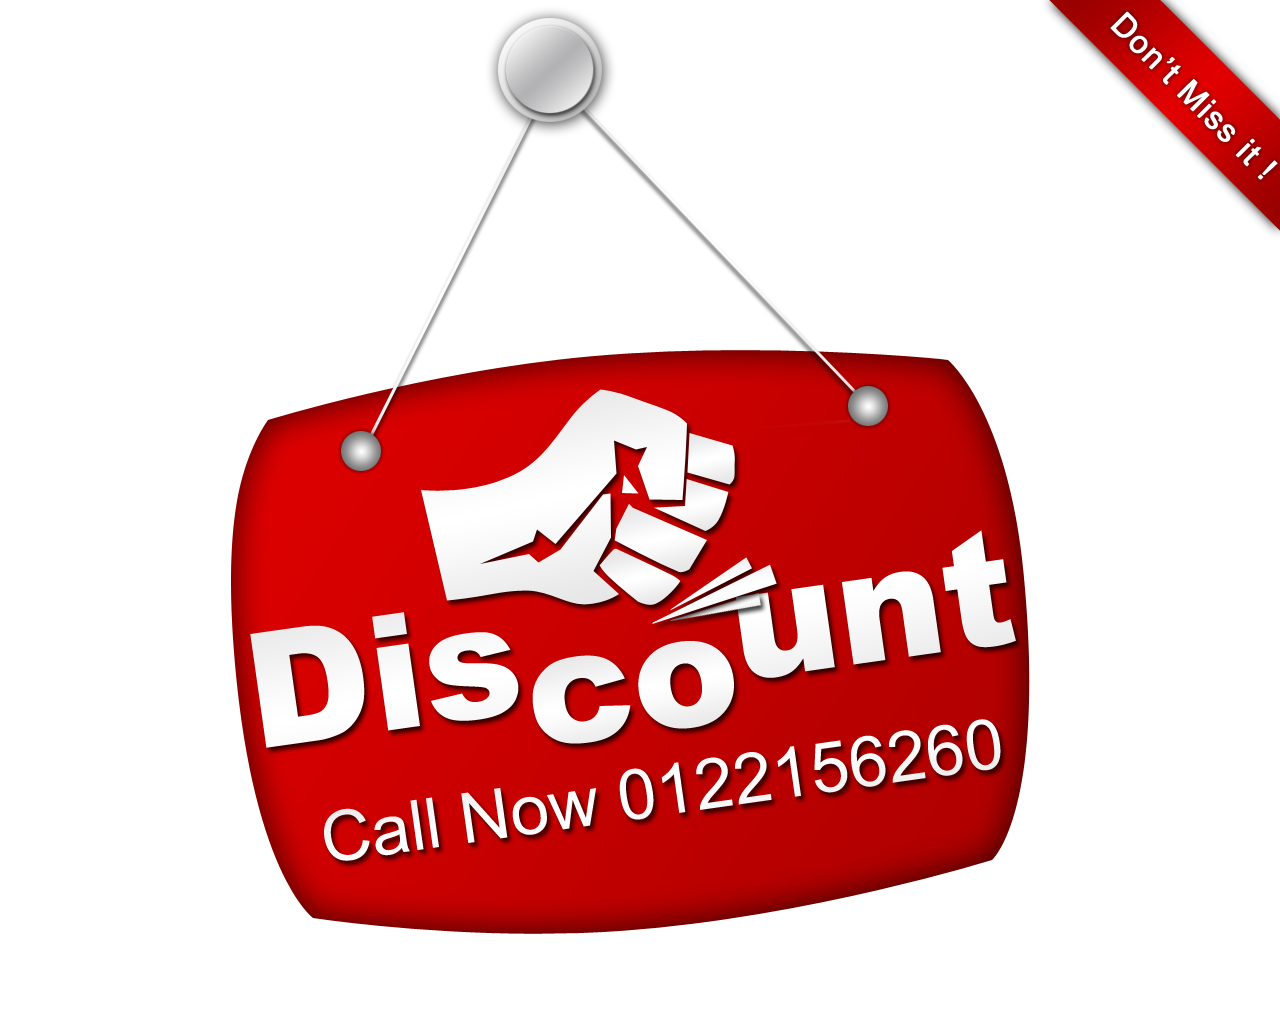 Discount 15 PNG Image - Discount PNG